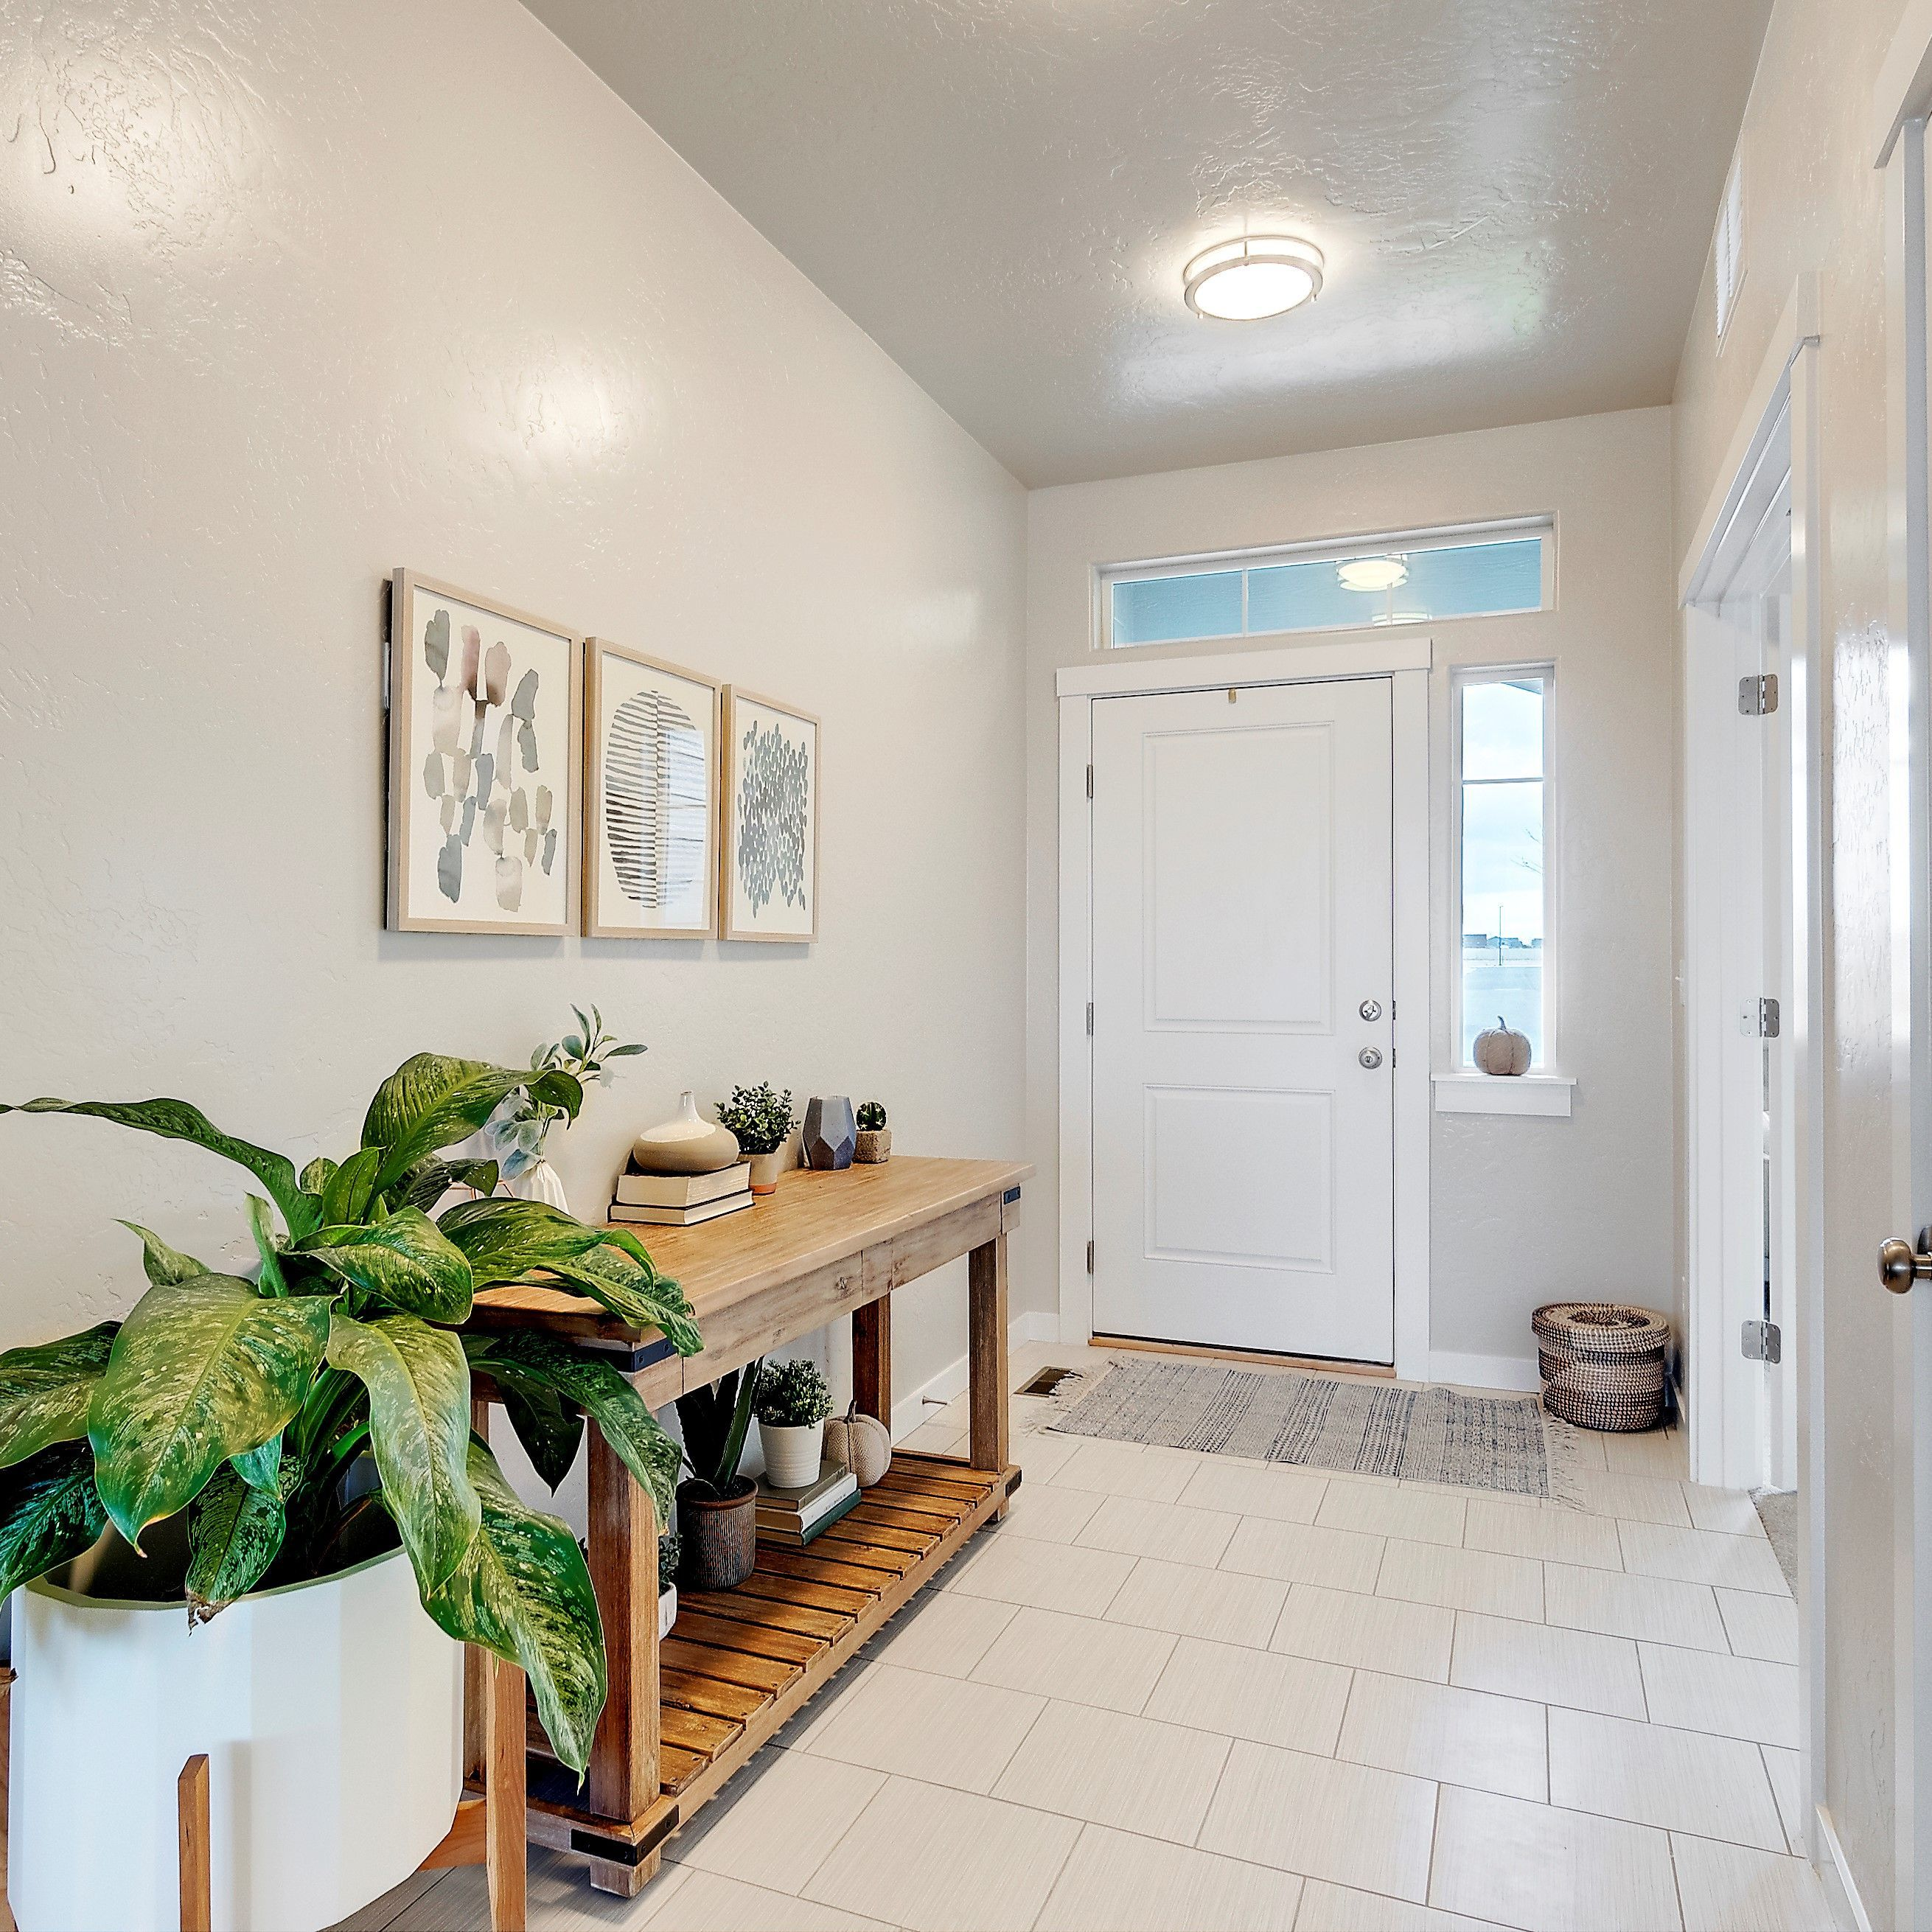 Cbh homes also best mint pine staging images beautiful interiors rh pinterest